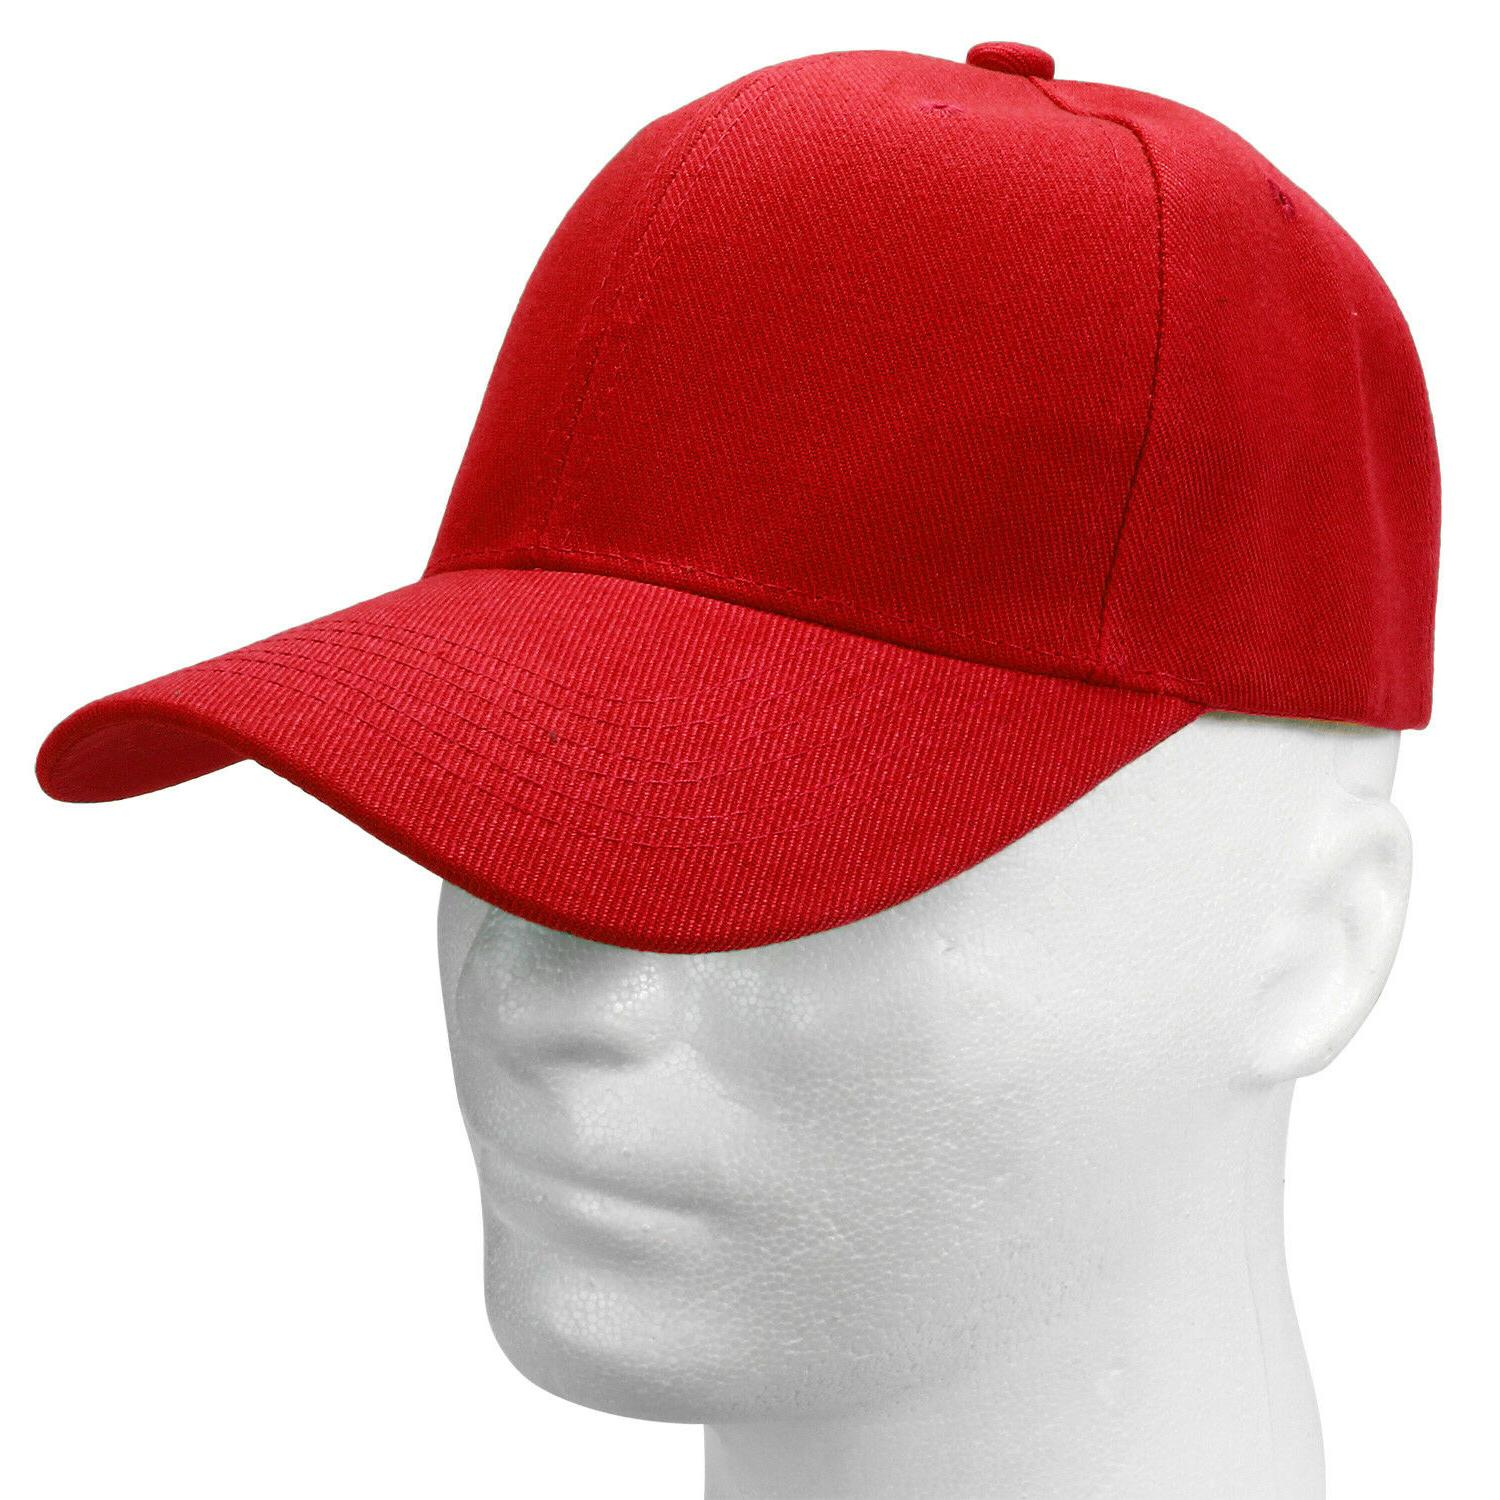 Wholesale Baseball Cap Adjustable Solid Color